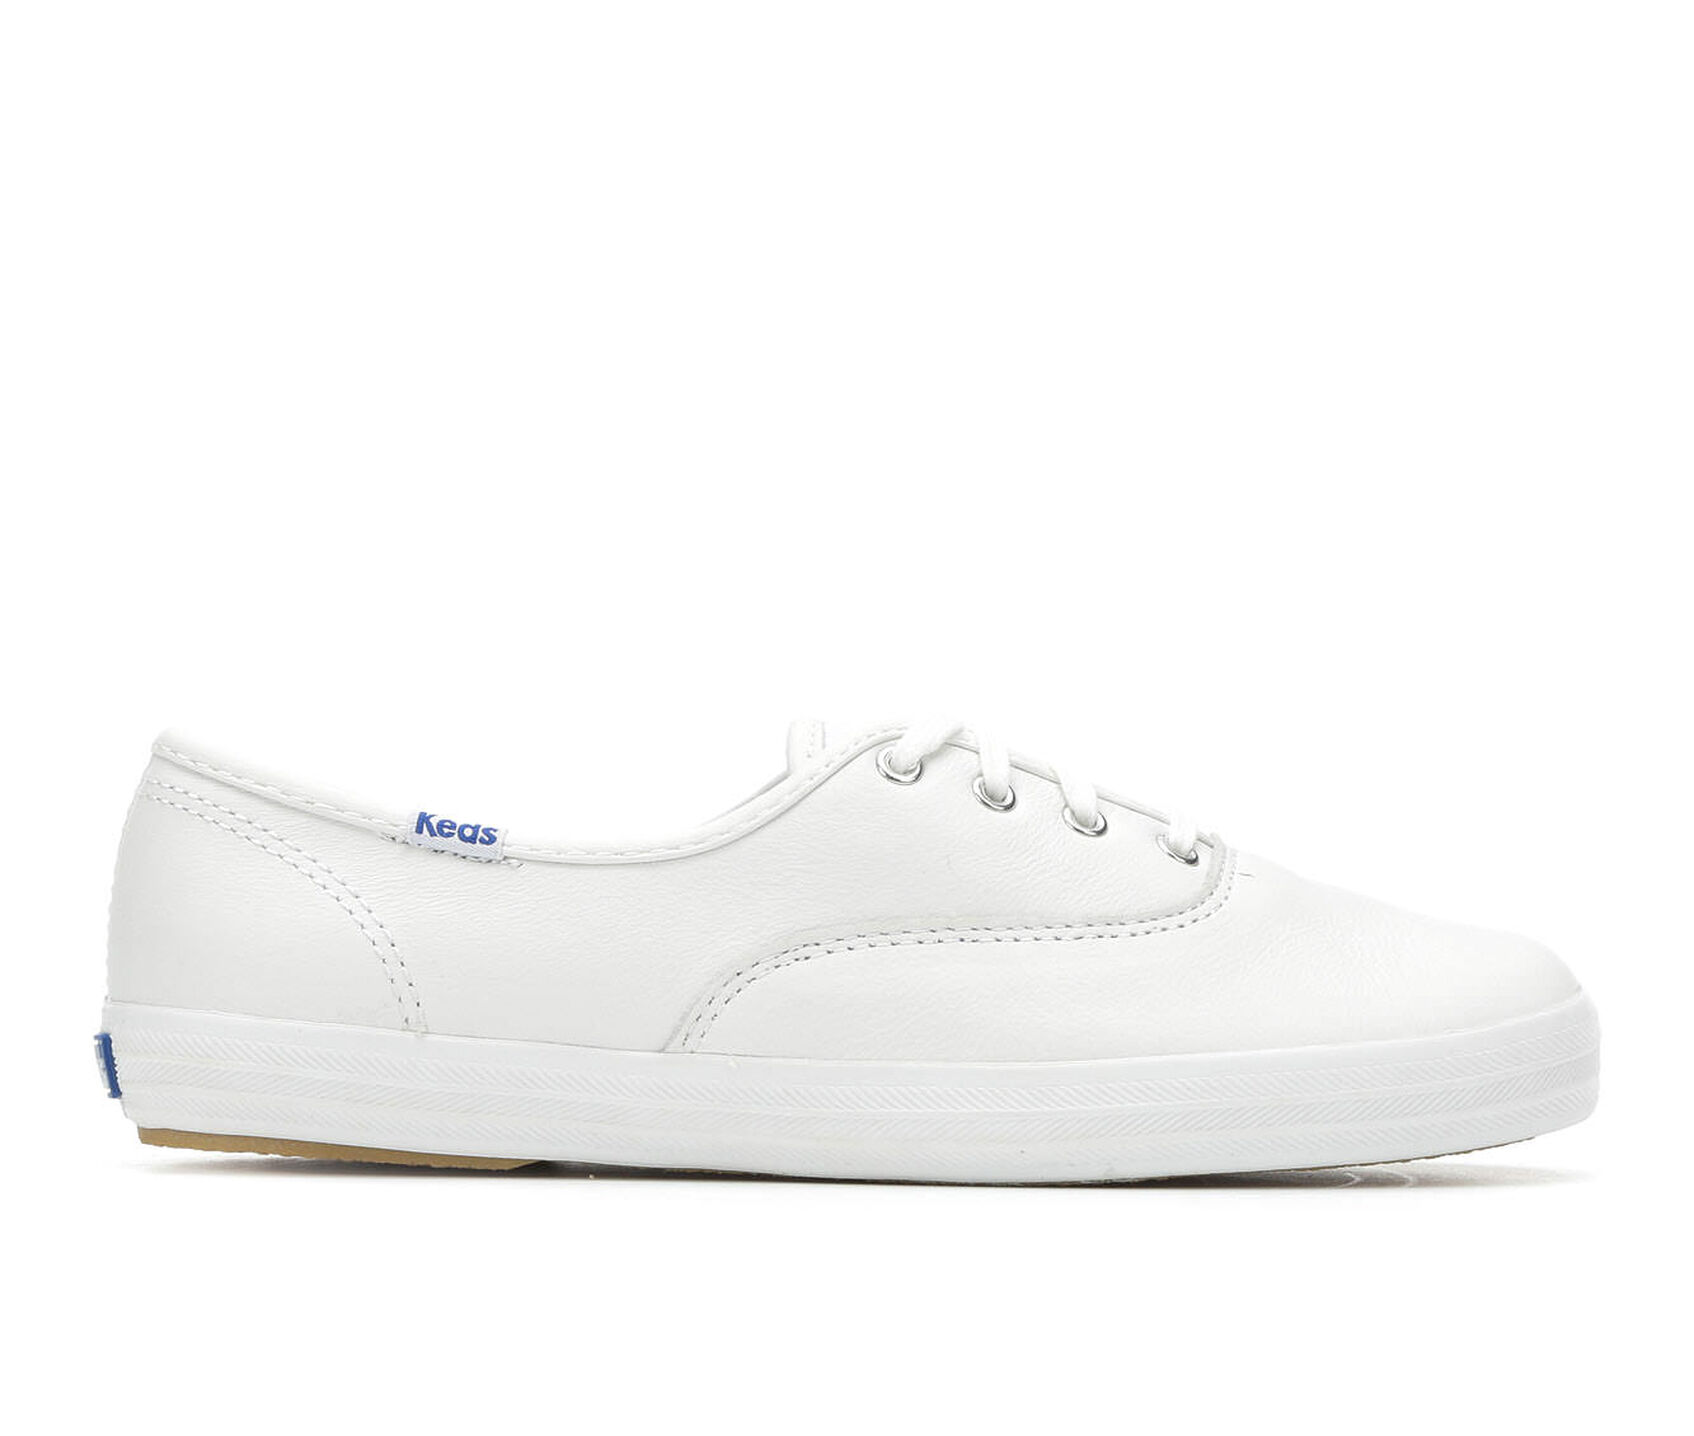 b245f0889e3 ... Keds Champion Leather Oxford Sneakers. Previous